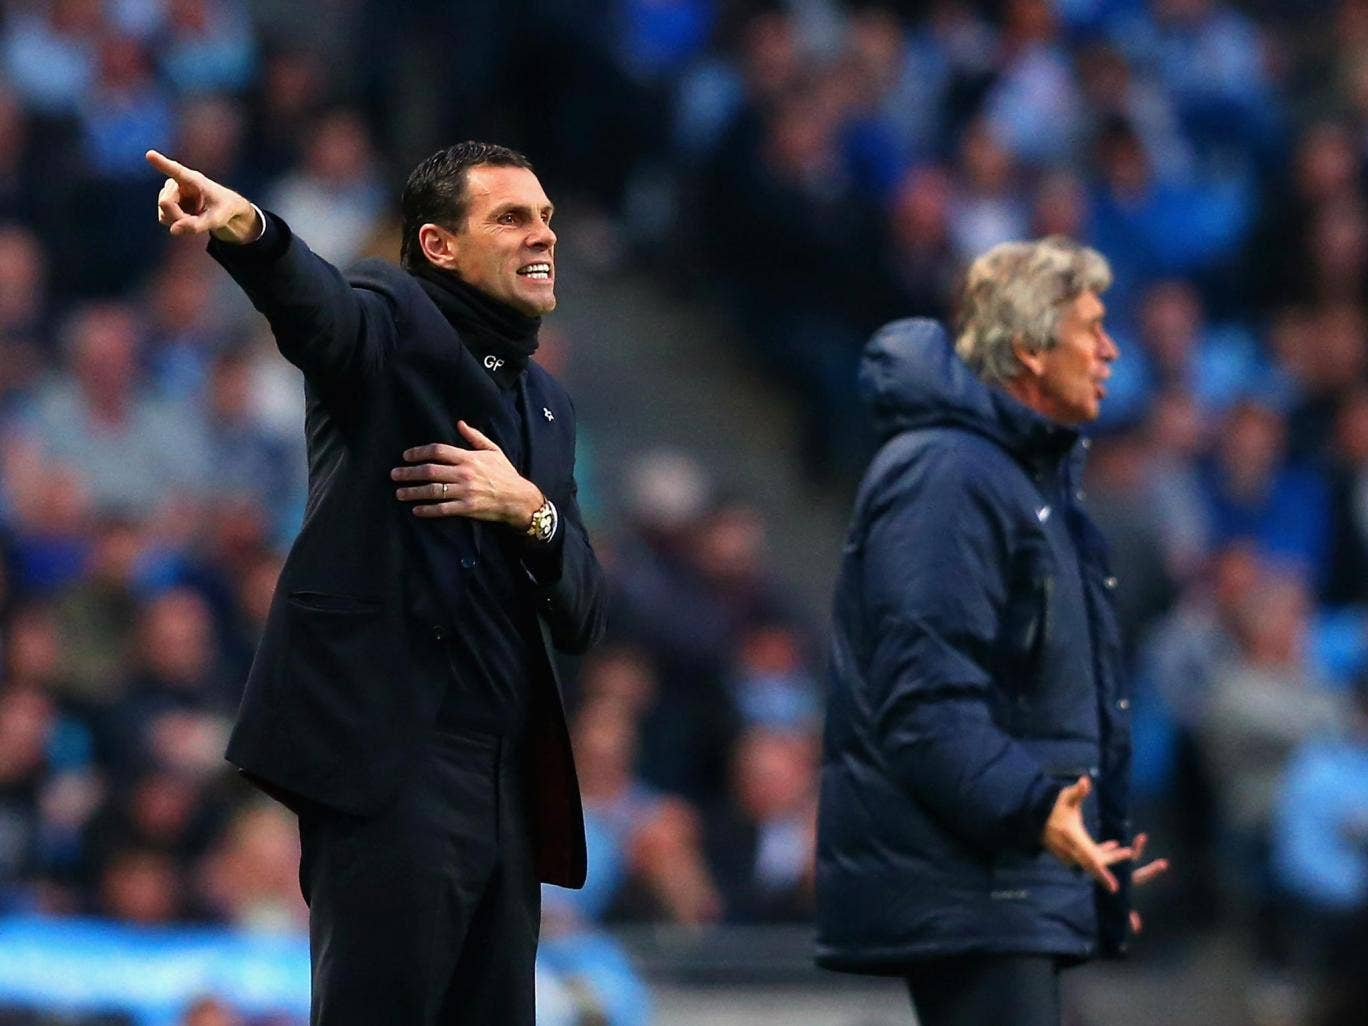 Gus Poyet was pleased with his Sunderland side's 2-2 draw with Manchester City